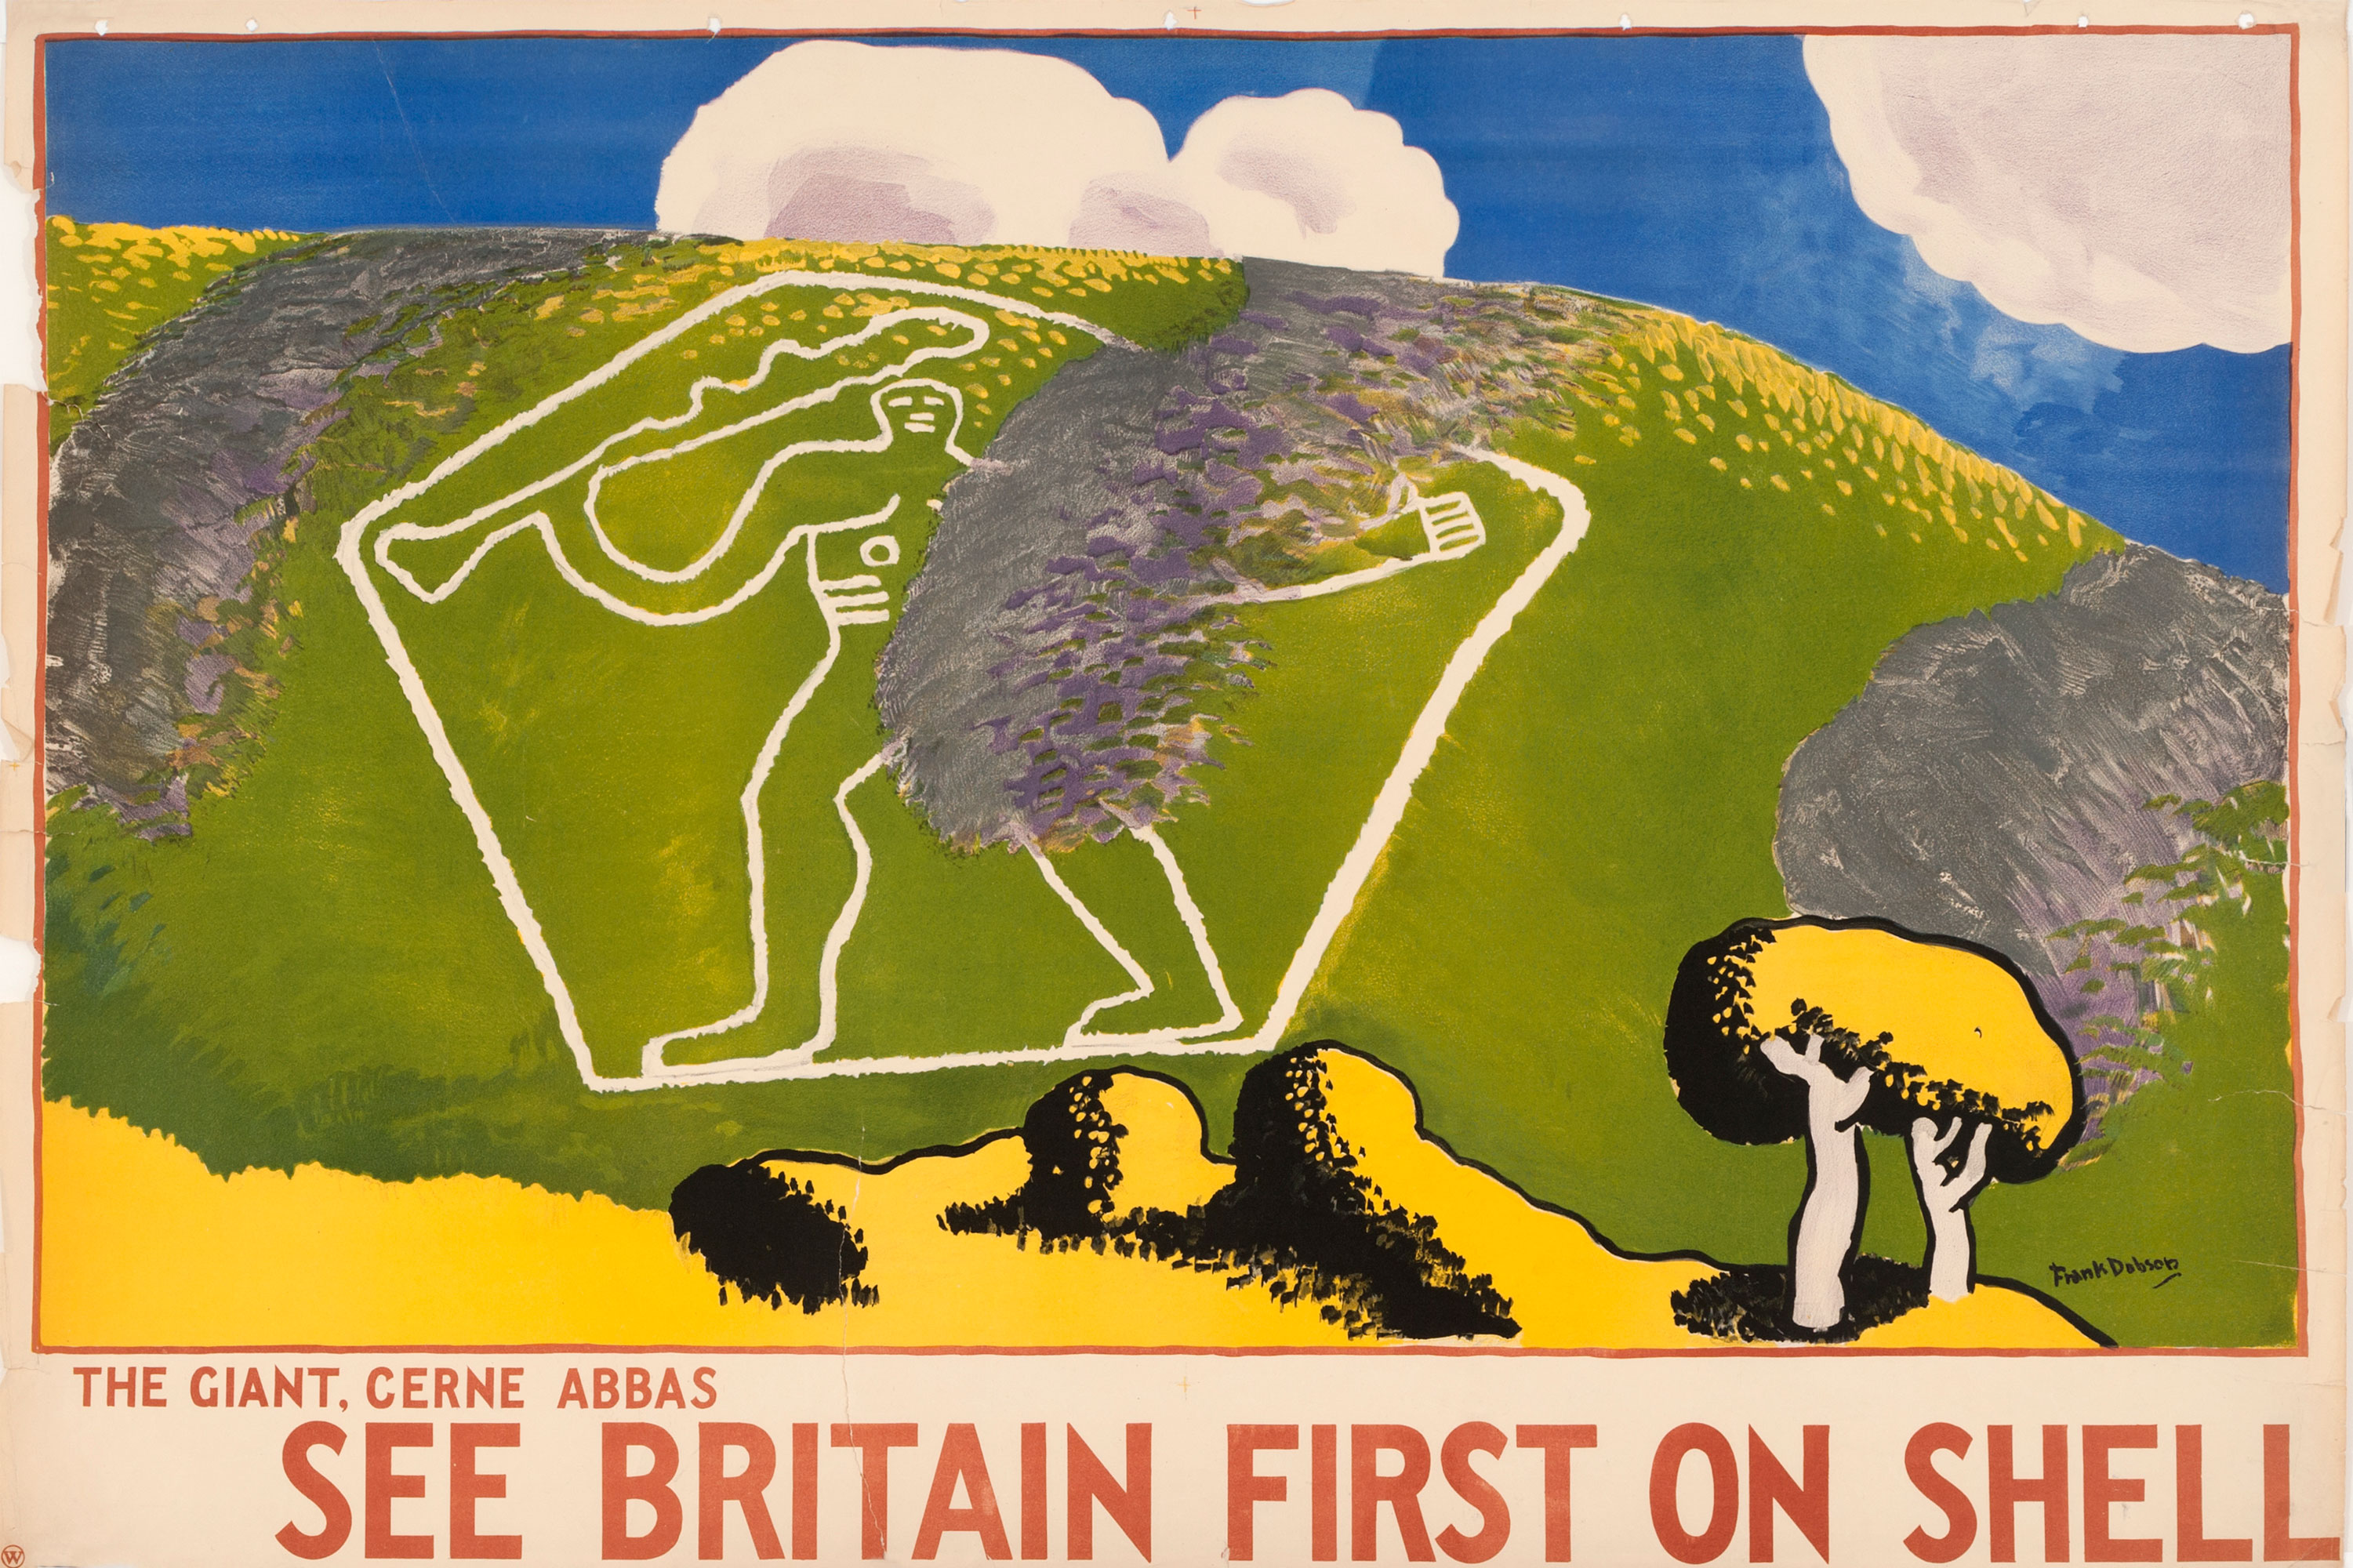 Shell poster number 313, The Giant, Cerne Abbas. A painting of the Cerne Abbas Giant, a naked chalk figure etched into the landscape. . A strategically placed cloud shadow protects his modesty!